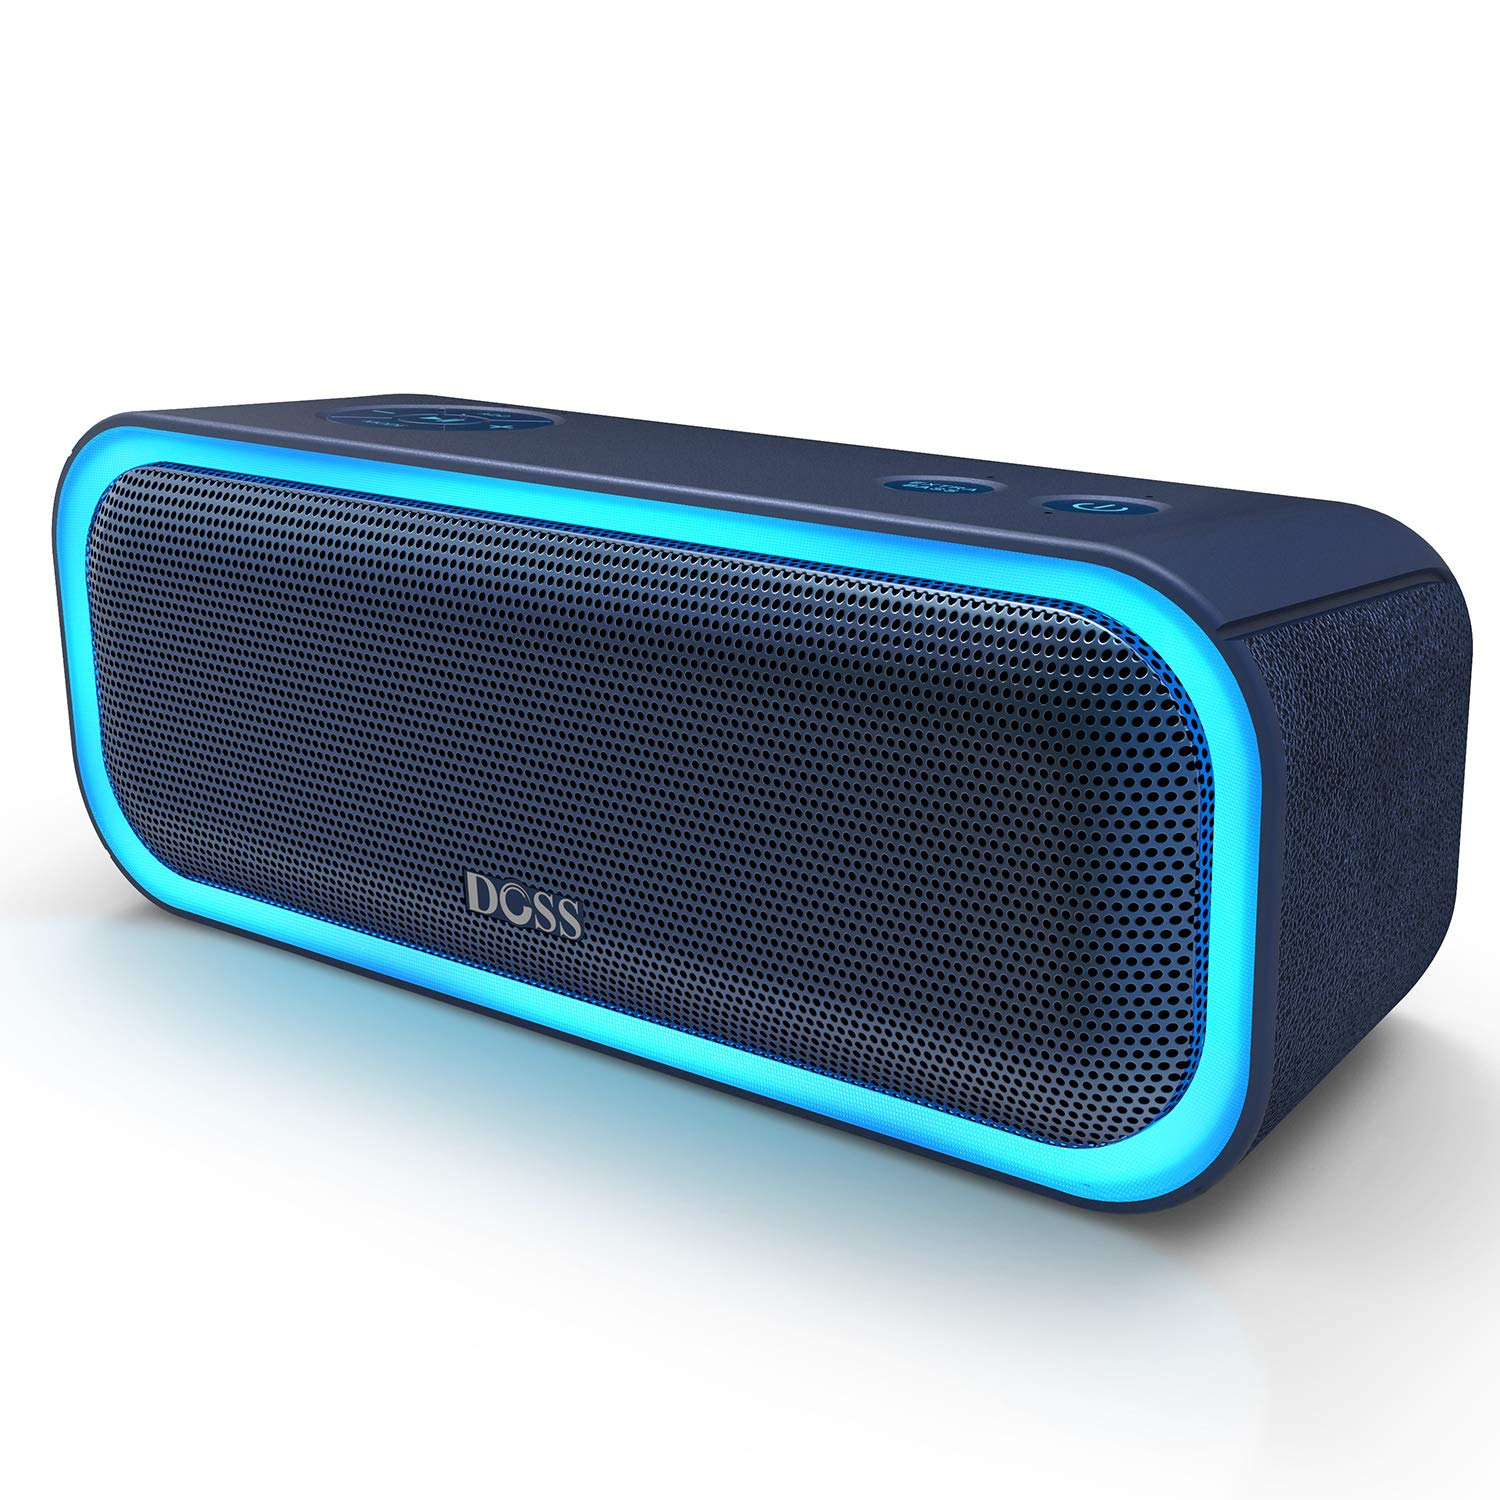 DOSS SoundBox Pro Bluetooth Waterproof